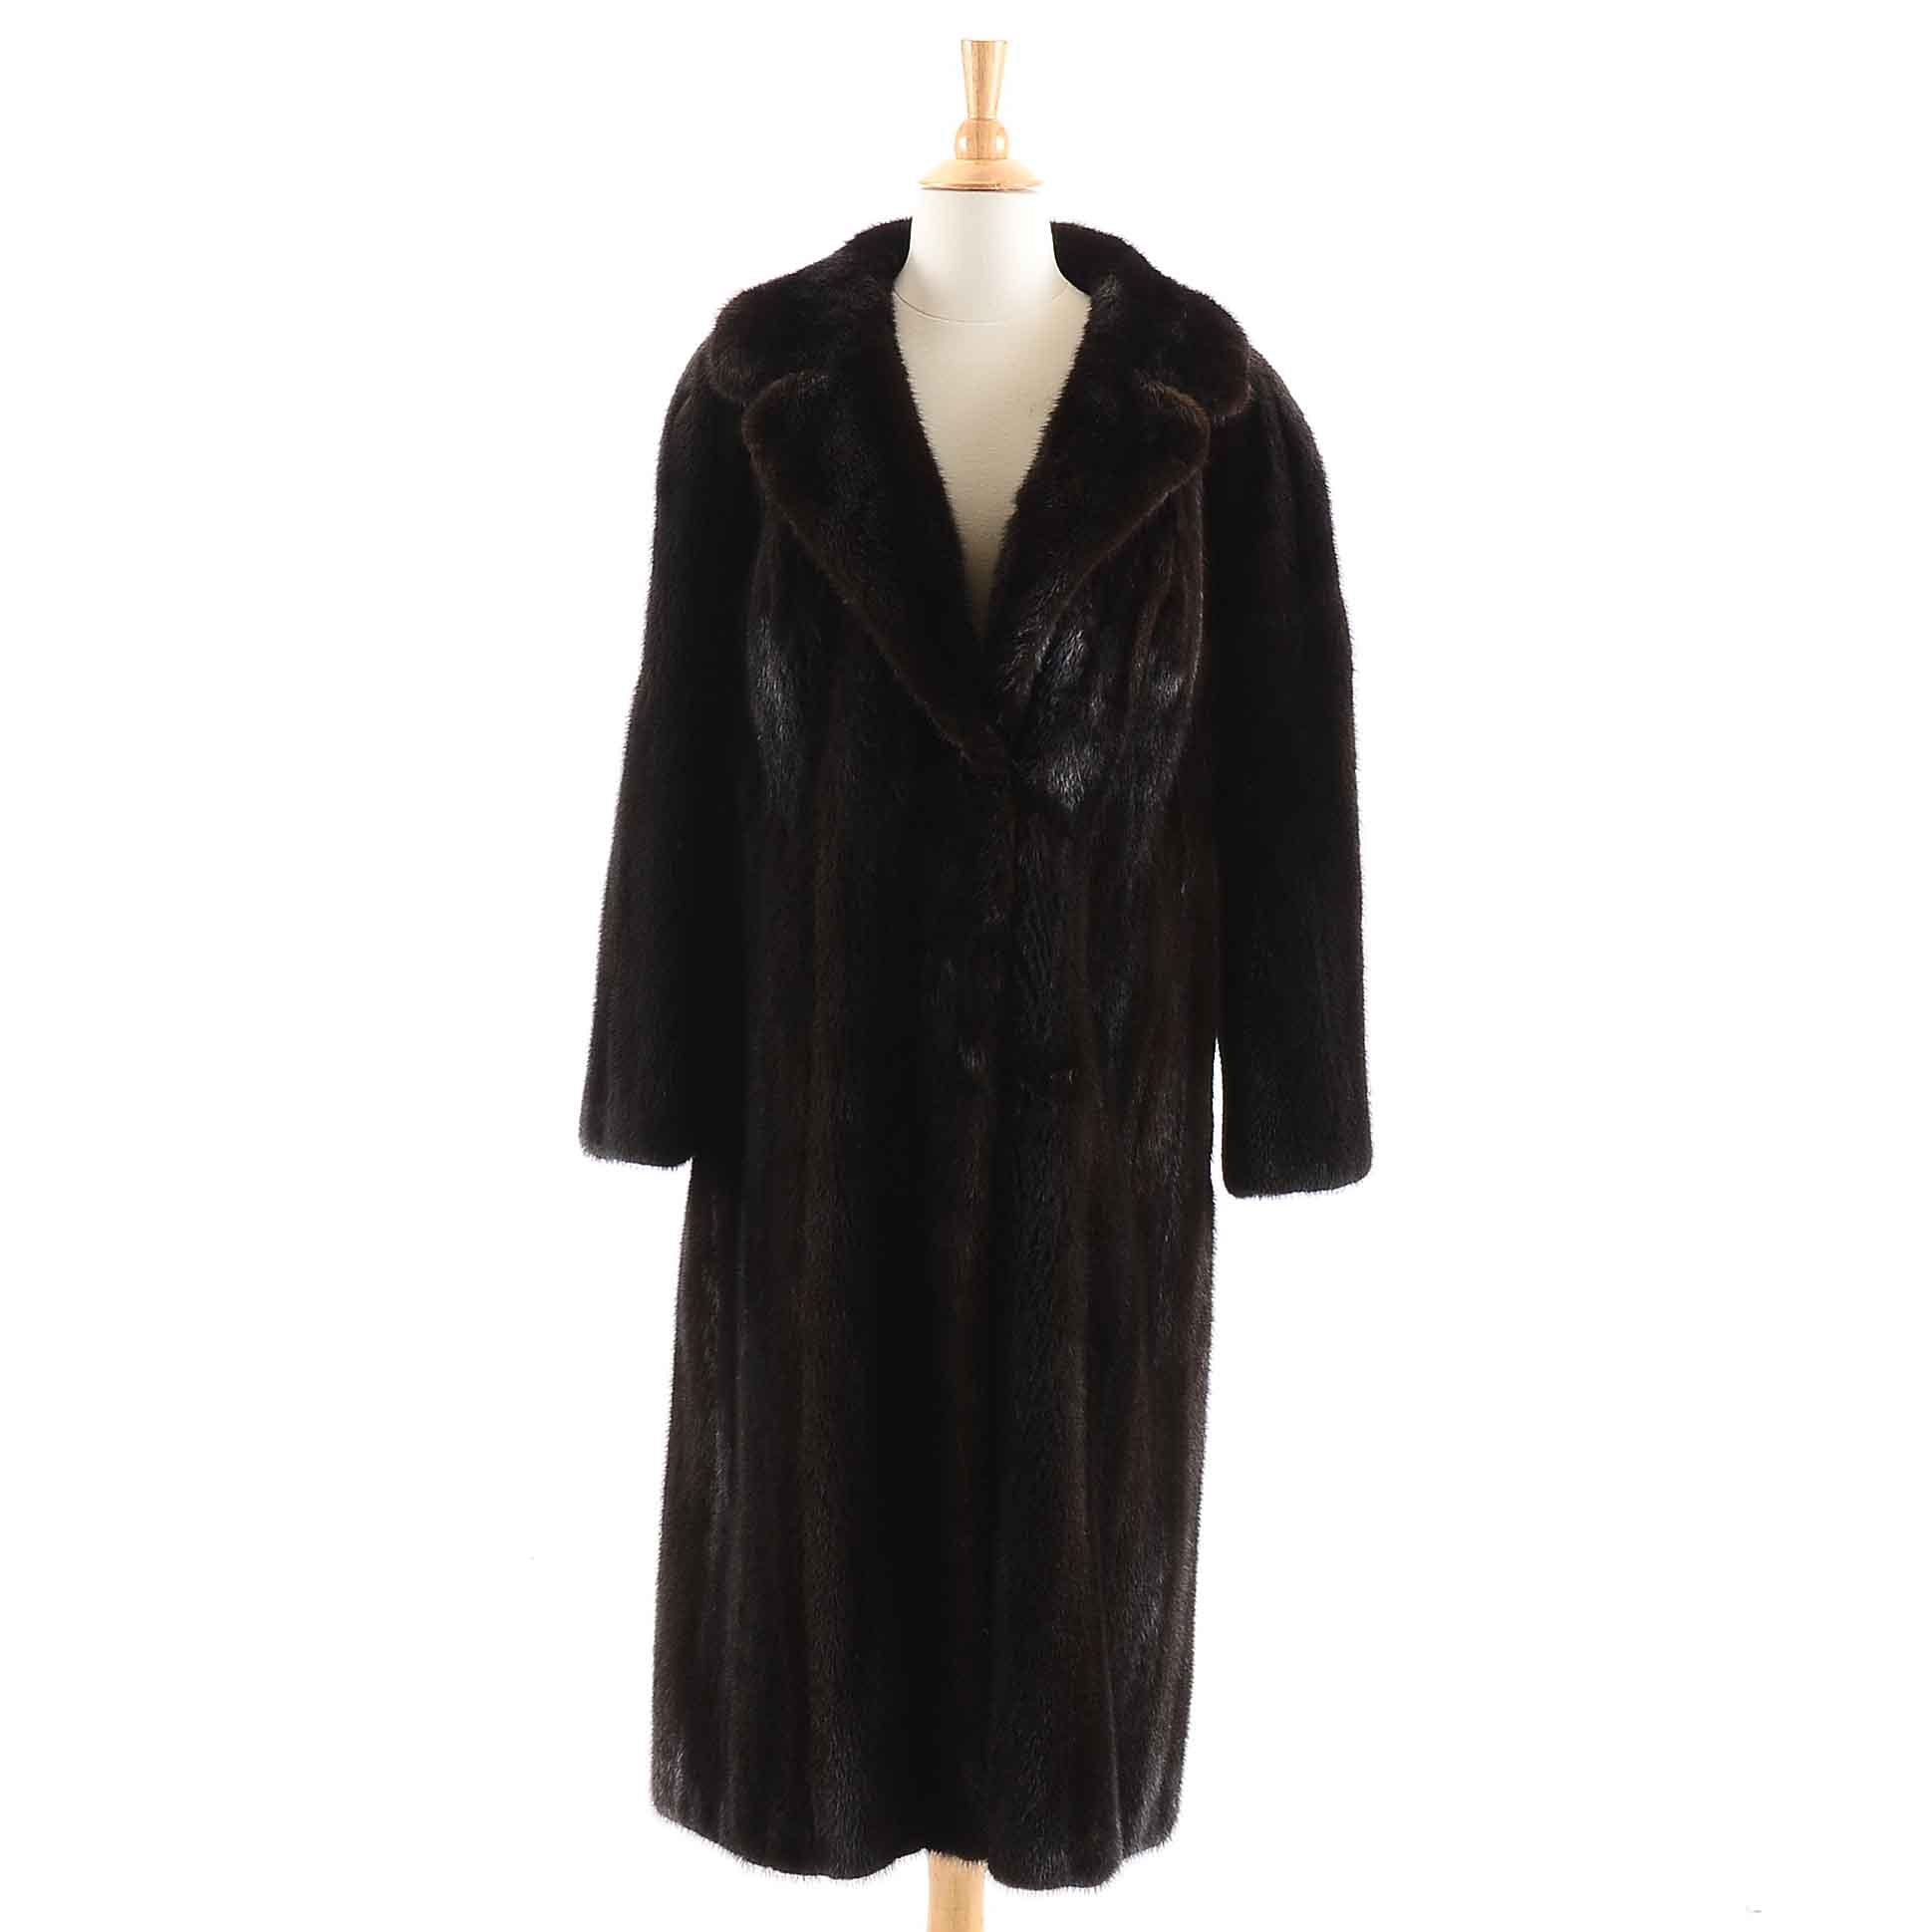 Full-Length Mink Fur Coat